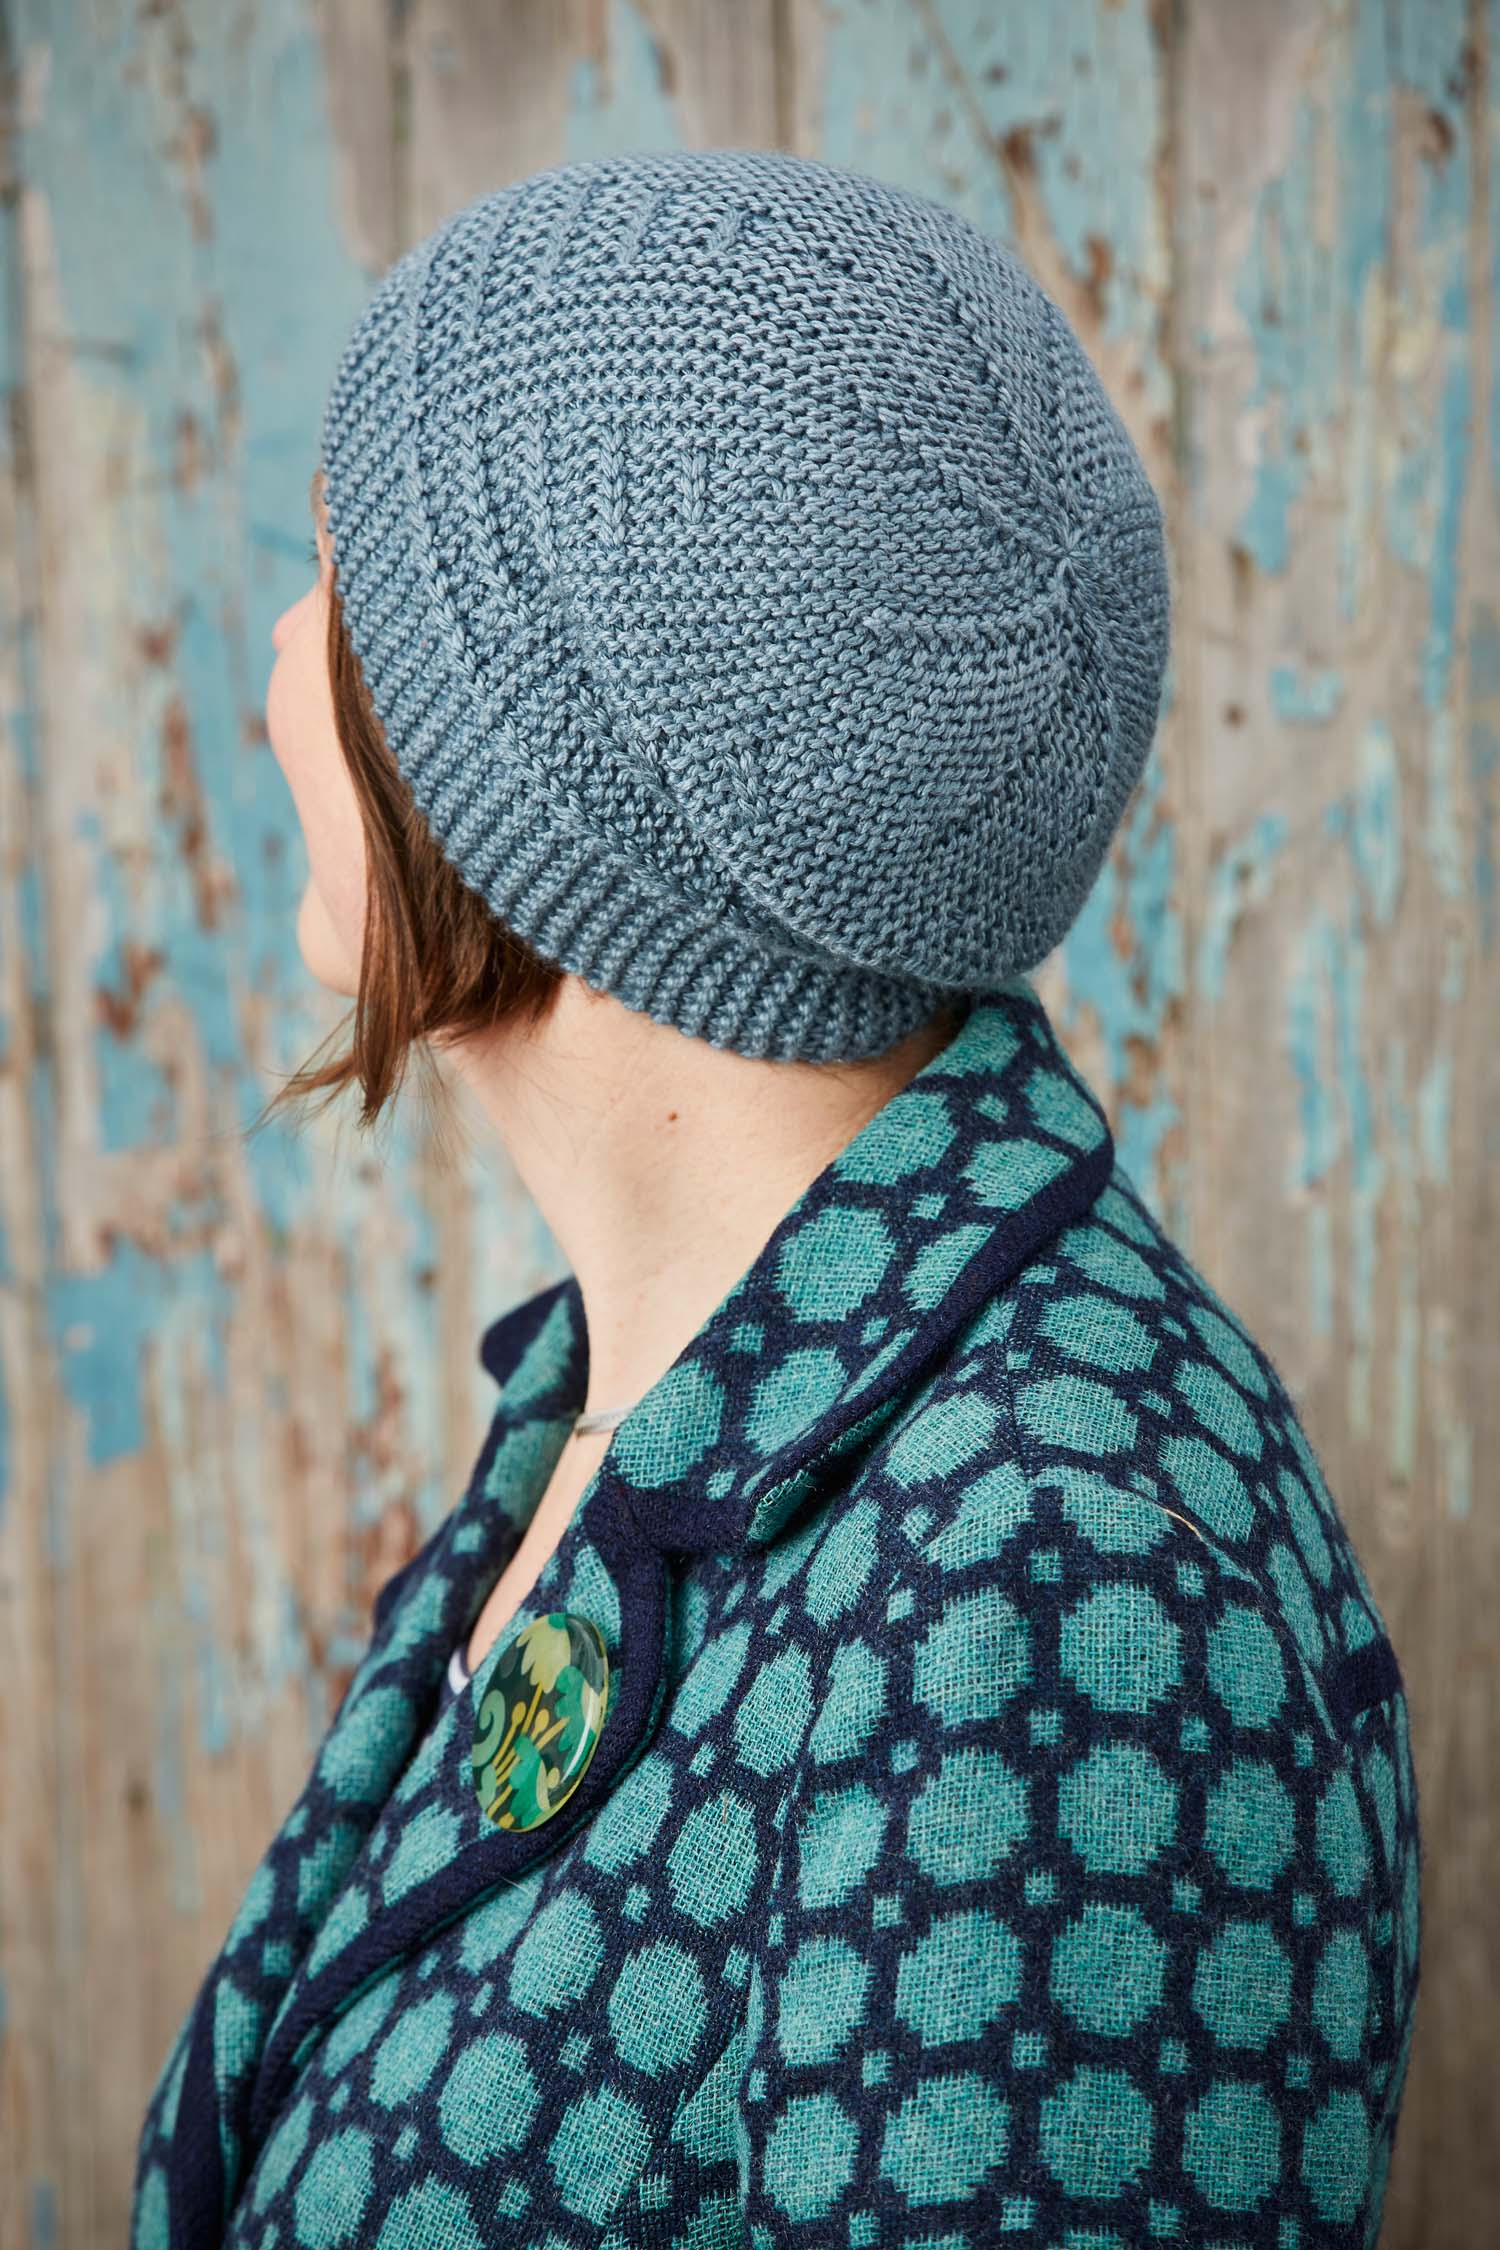 Short-row shaping creates both the crown and brim. Image © Jesse Wild.